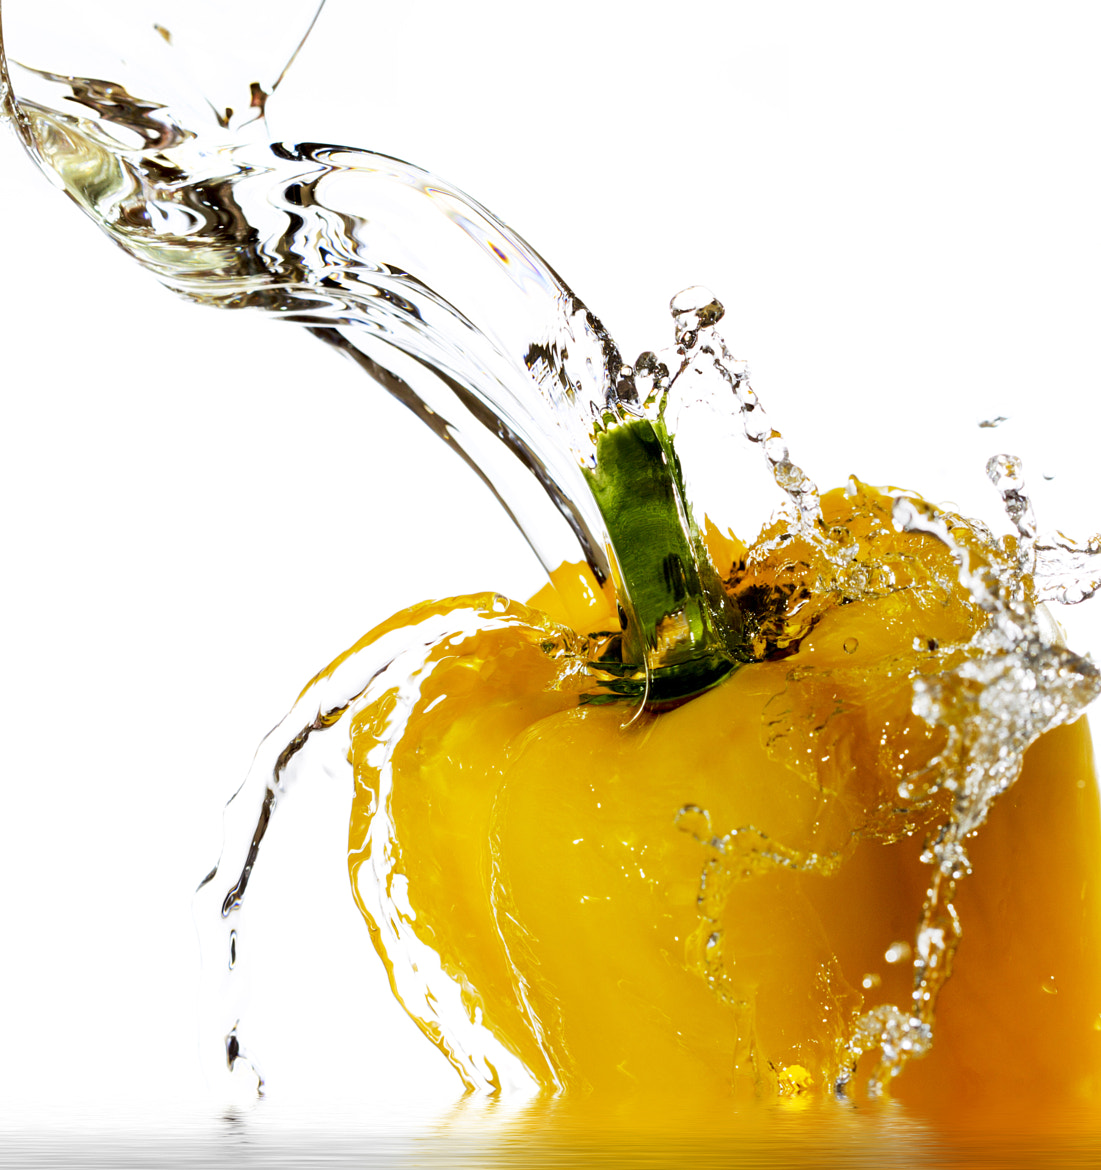 Photograph Cooling Pepper by Mark Tizard on 500px